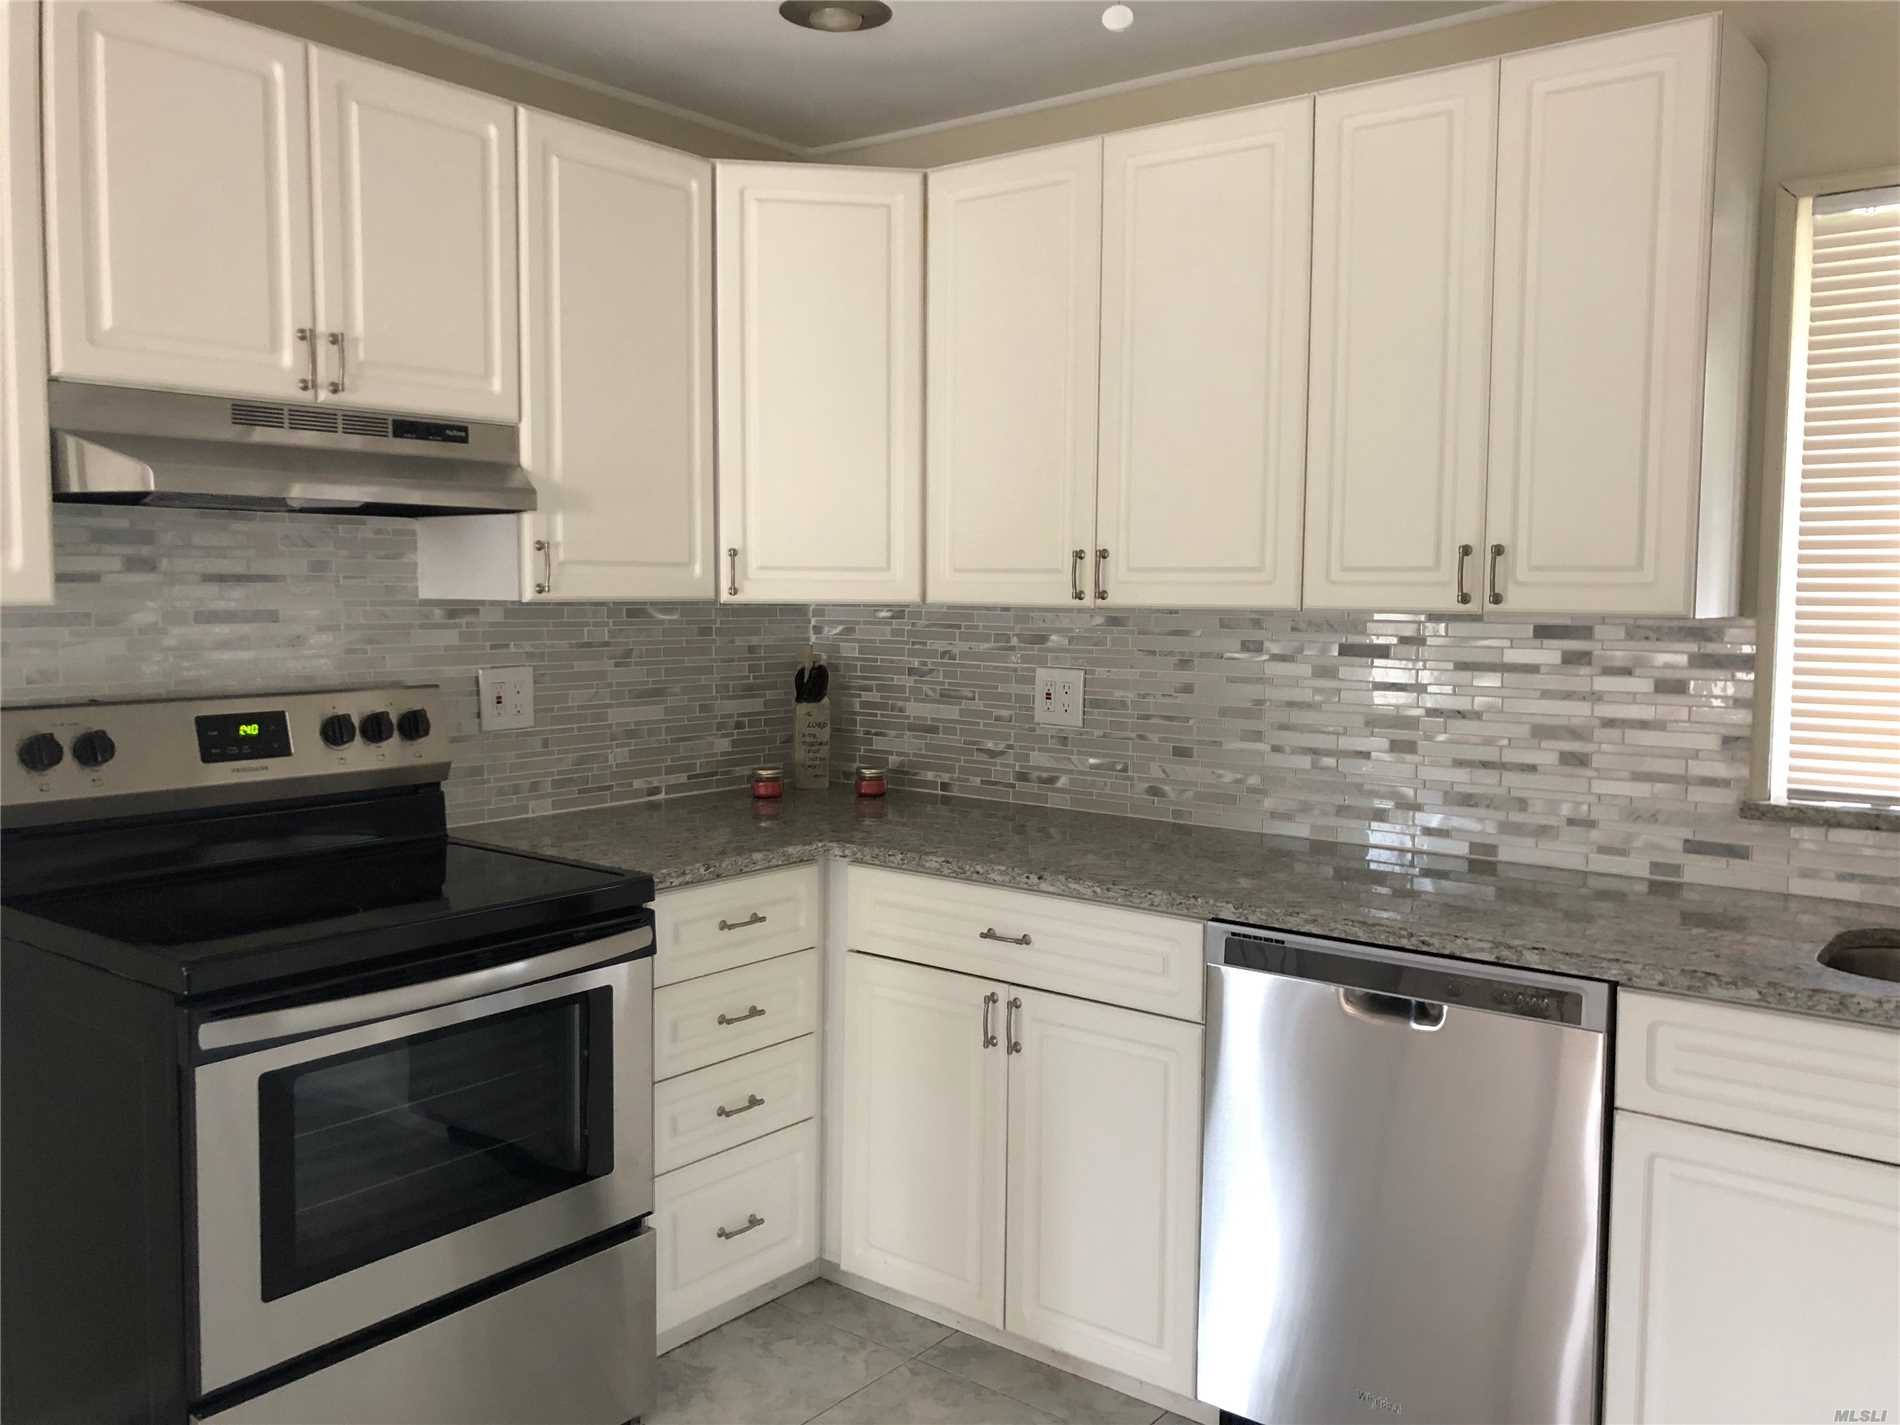 Renovated, Magnificent 5 Bedroom, 3.5 Bath Home In Desirable Area Of Hicksville. Many Updates: New SS Appliances, Granite Counter, New Washer/ Dryer, Freshly Painted Throughout, Crown Molding, Updated Baths, New Laminate Floors On 1st Level & Refinished Wood Floors On 2nd Level, New Vinyl Fence, New Boiler, New Electrical Service With Generator Plug. Open Floor Plan, Plenty Of Closets. Bright & Spacious. Must See! Taxes are in the process of being grieved. Mother/daughter with proper permits.